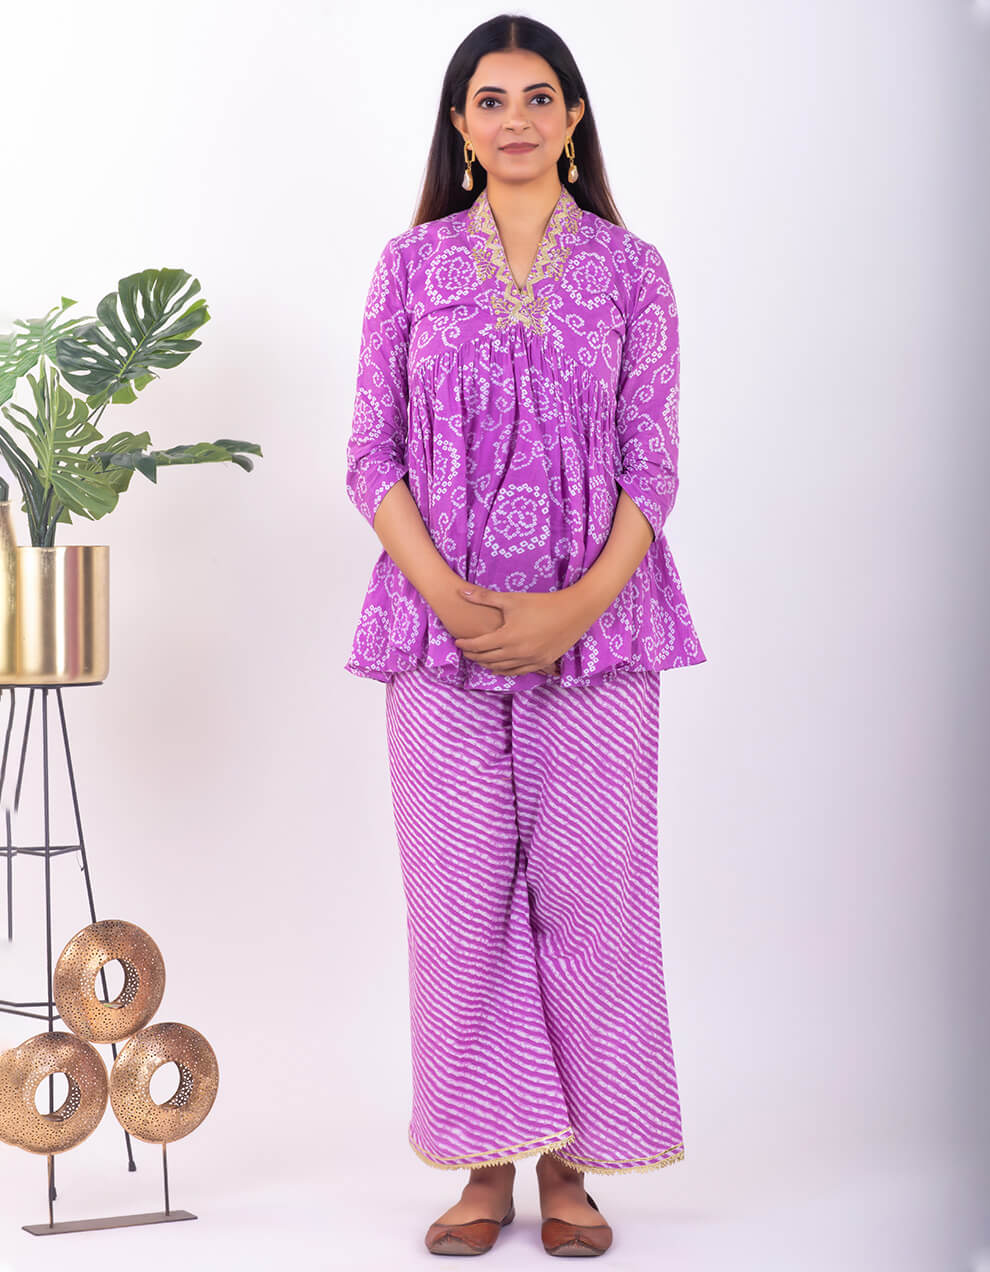 Multicolored cotton short kurta with pants designers in India